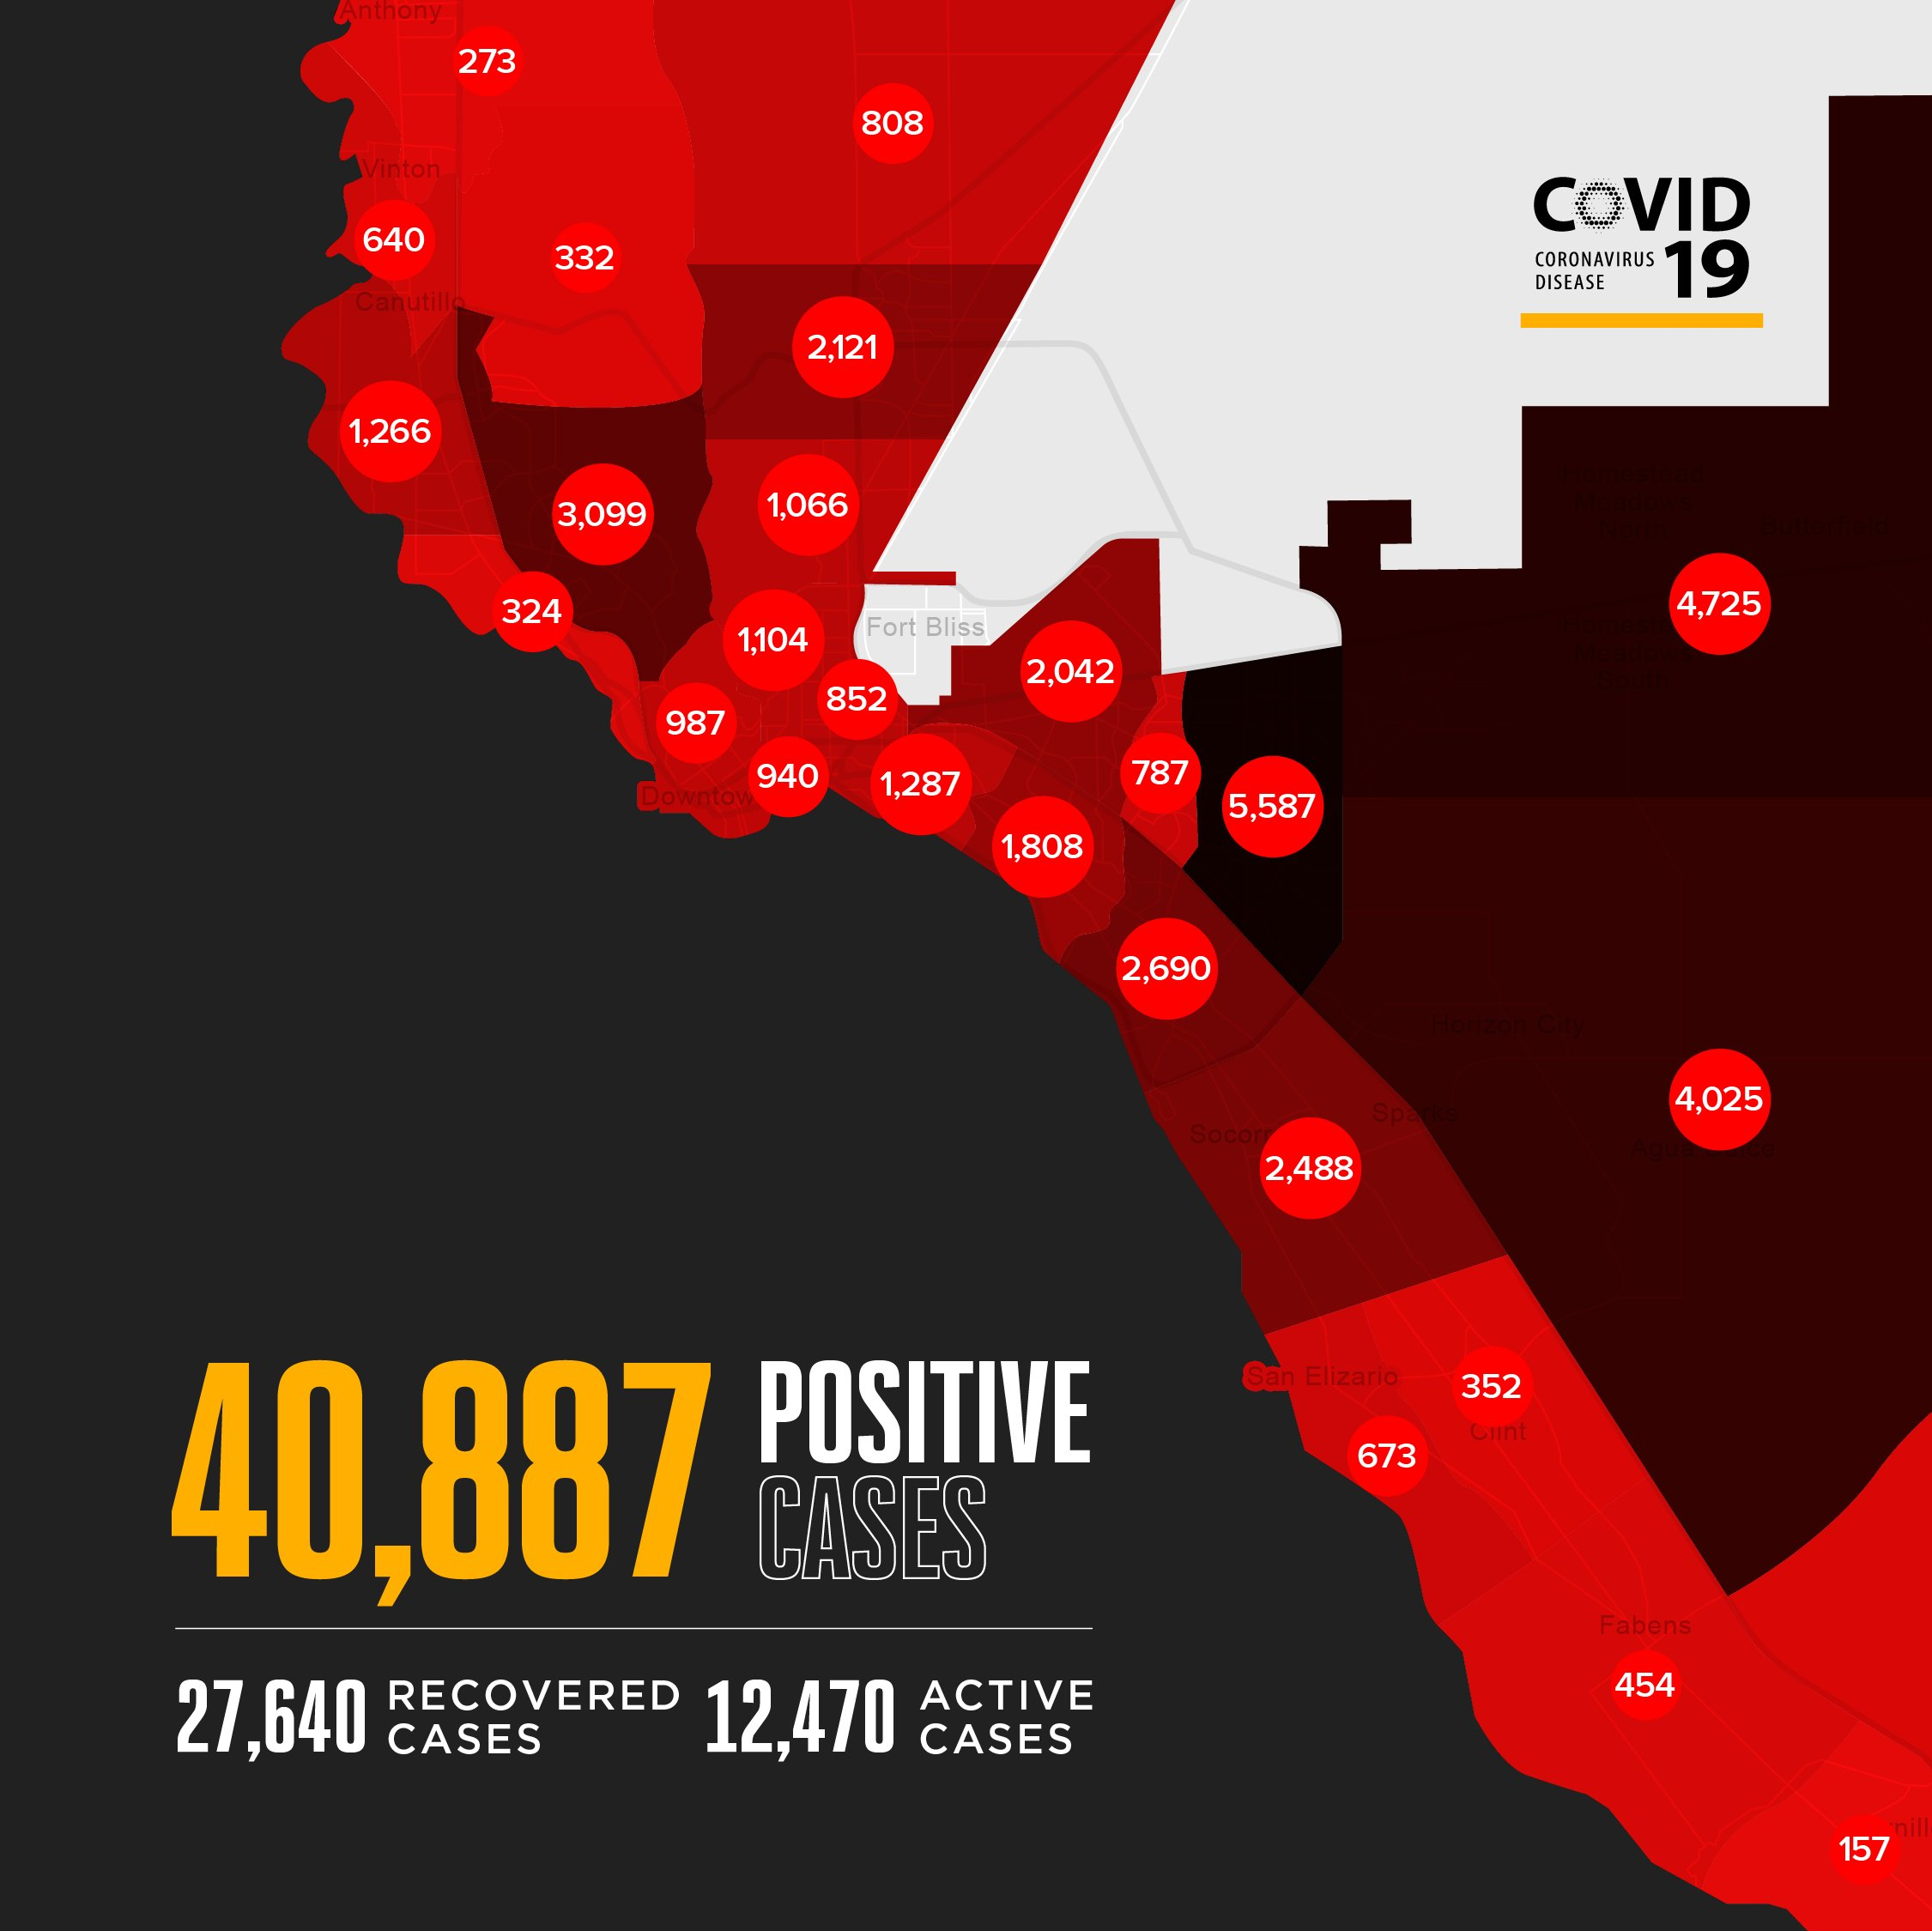 This map shows the cumulative total of positive COVID-19 cases by ZIP codes and the number of cases in parenthesis: 79821 (273), 79835 (640), 79836 (352), 79838 (454), 79849 (673), 79853 (157), 79901 (940), 79902 (987), 79903 (852), 79904 (1,066), 79905 (1,287), 79907 (2,690), 79911 (332), 79912 (3,099), 79915 (1,808), 79922 (324), 79924 (2,121), 79925 (2,042), 79927 (2,488), 79928 (4,025), 79930 (1,104), 79932 (1,266), 79934 (808), 79935 (787), 79936 (5,587), 79938 (4,725)